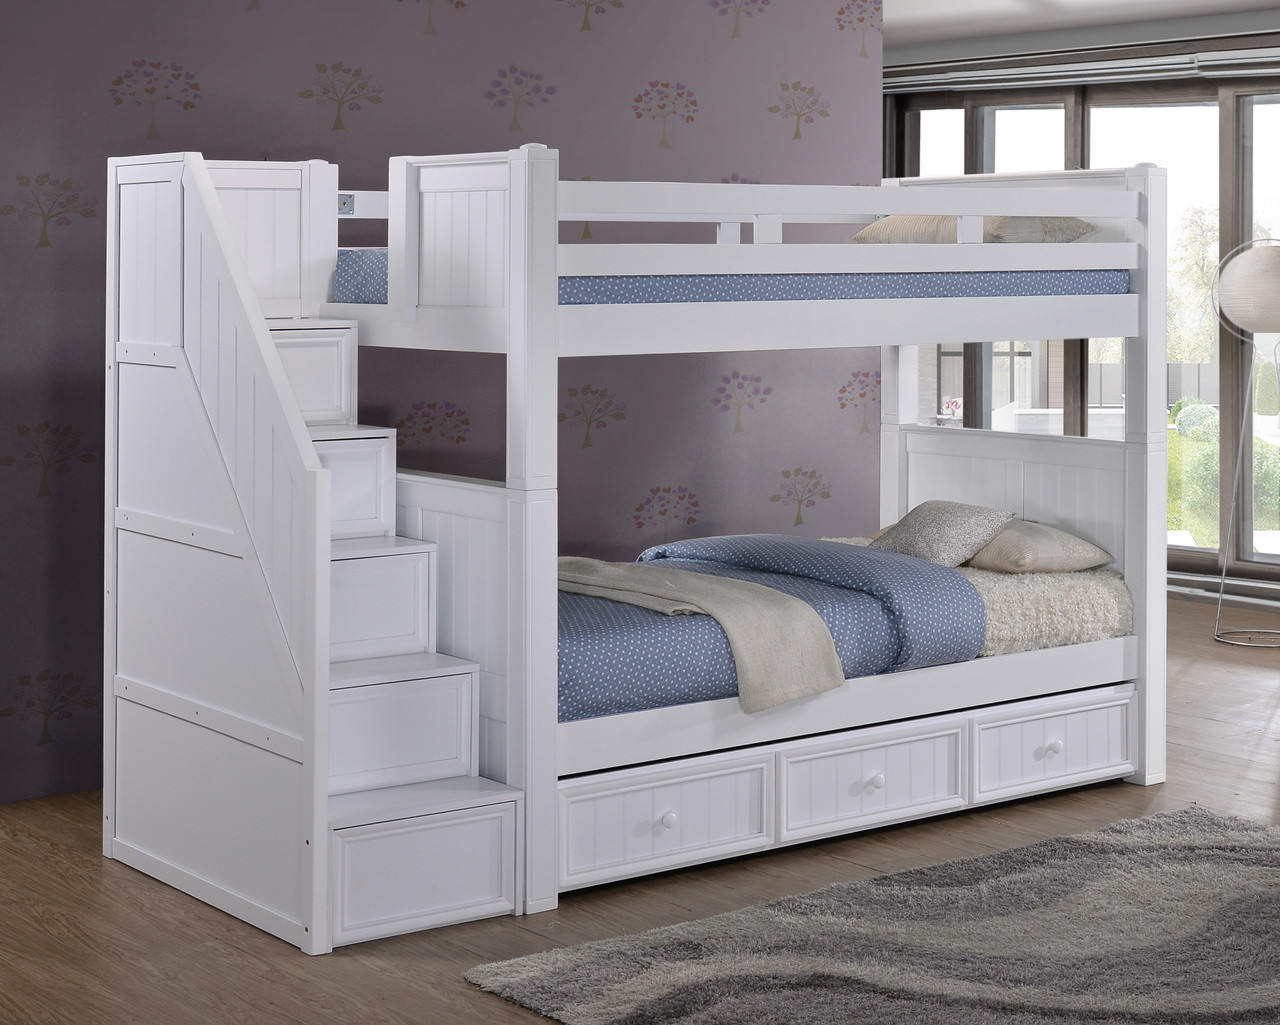 Advantages And Drawbacks Of Strong Wooden Loft Bed With Stairs Dillon White Twin Bunk Bed with Storage Stairs | DILLON White Twin Over Twin  Bunk Bed ...